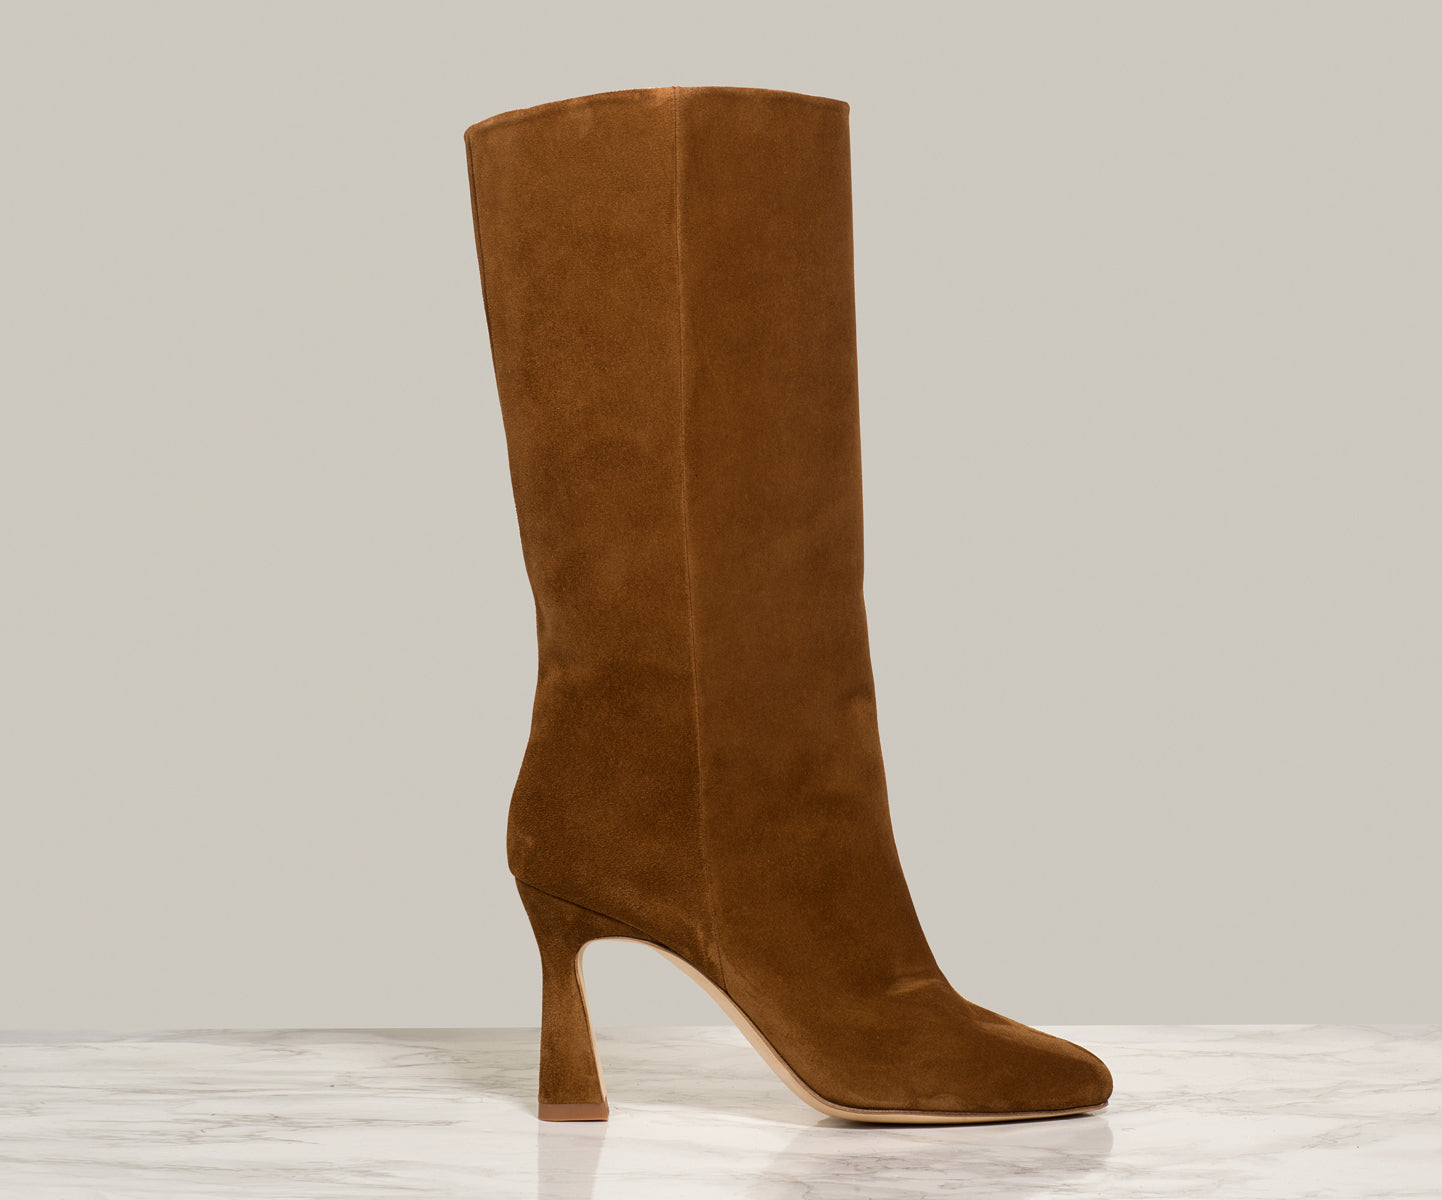 QUEEN BOOT, Tan Suede